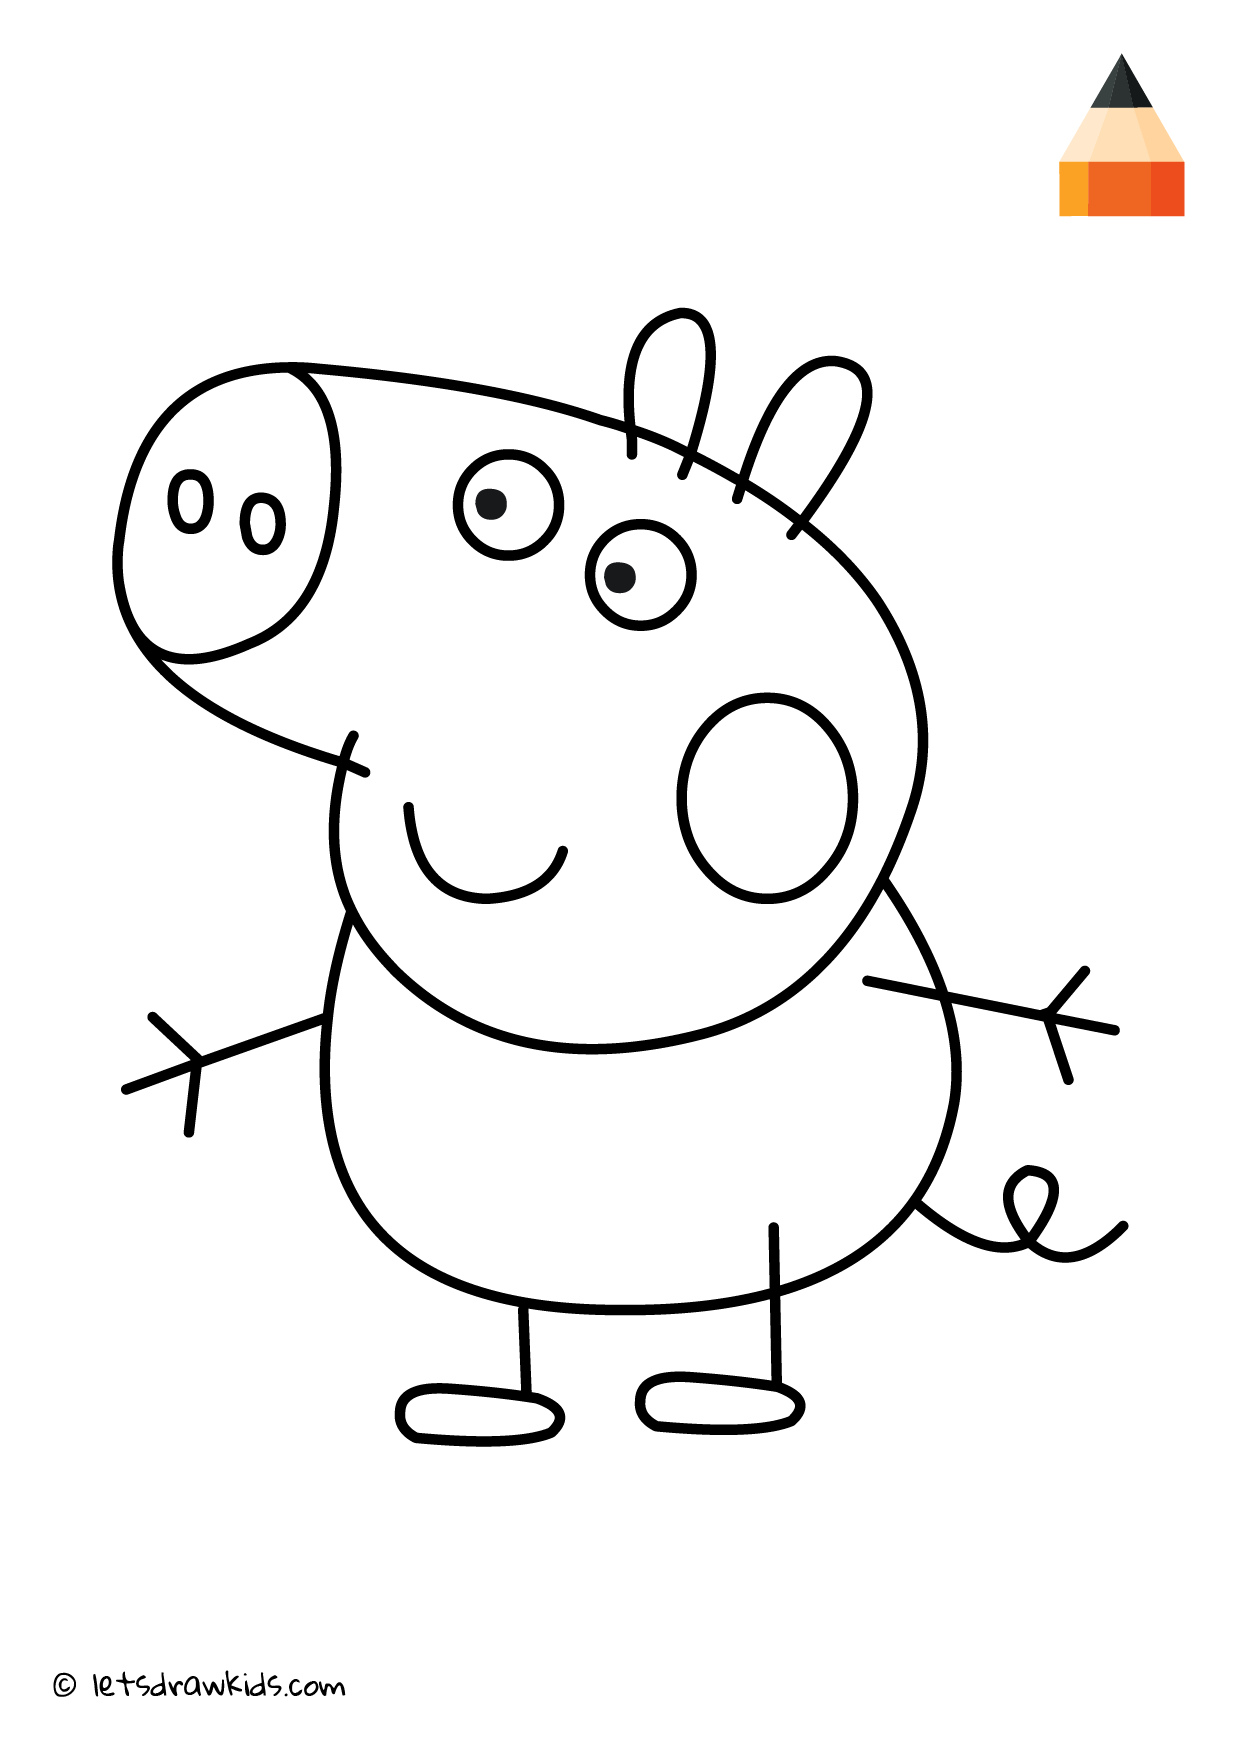 Coloring Page George Pig Barbie Drawing Peppa Pig Painting Dolphin Coloring Pages